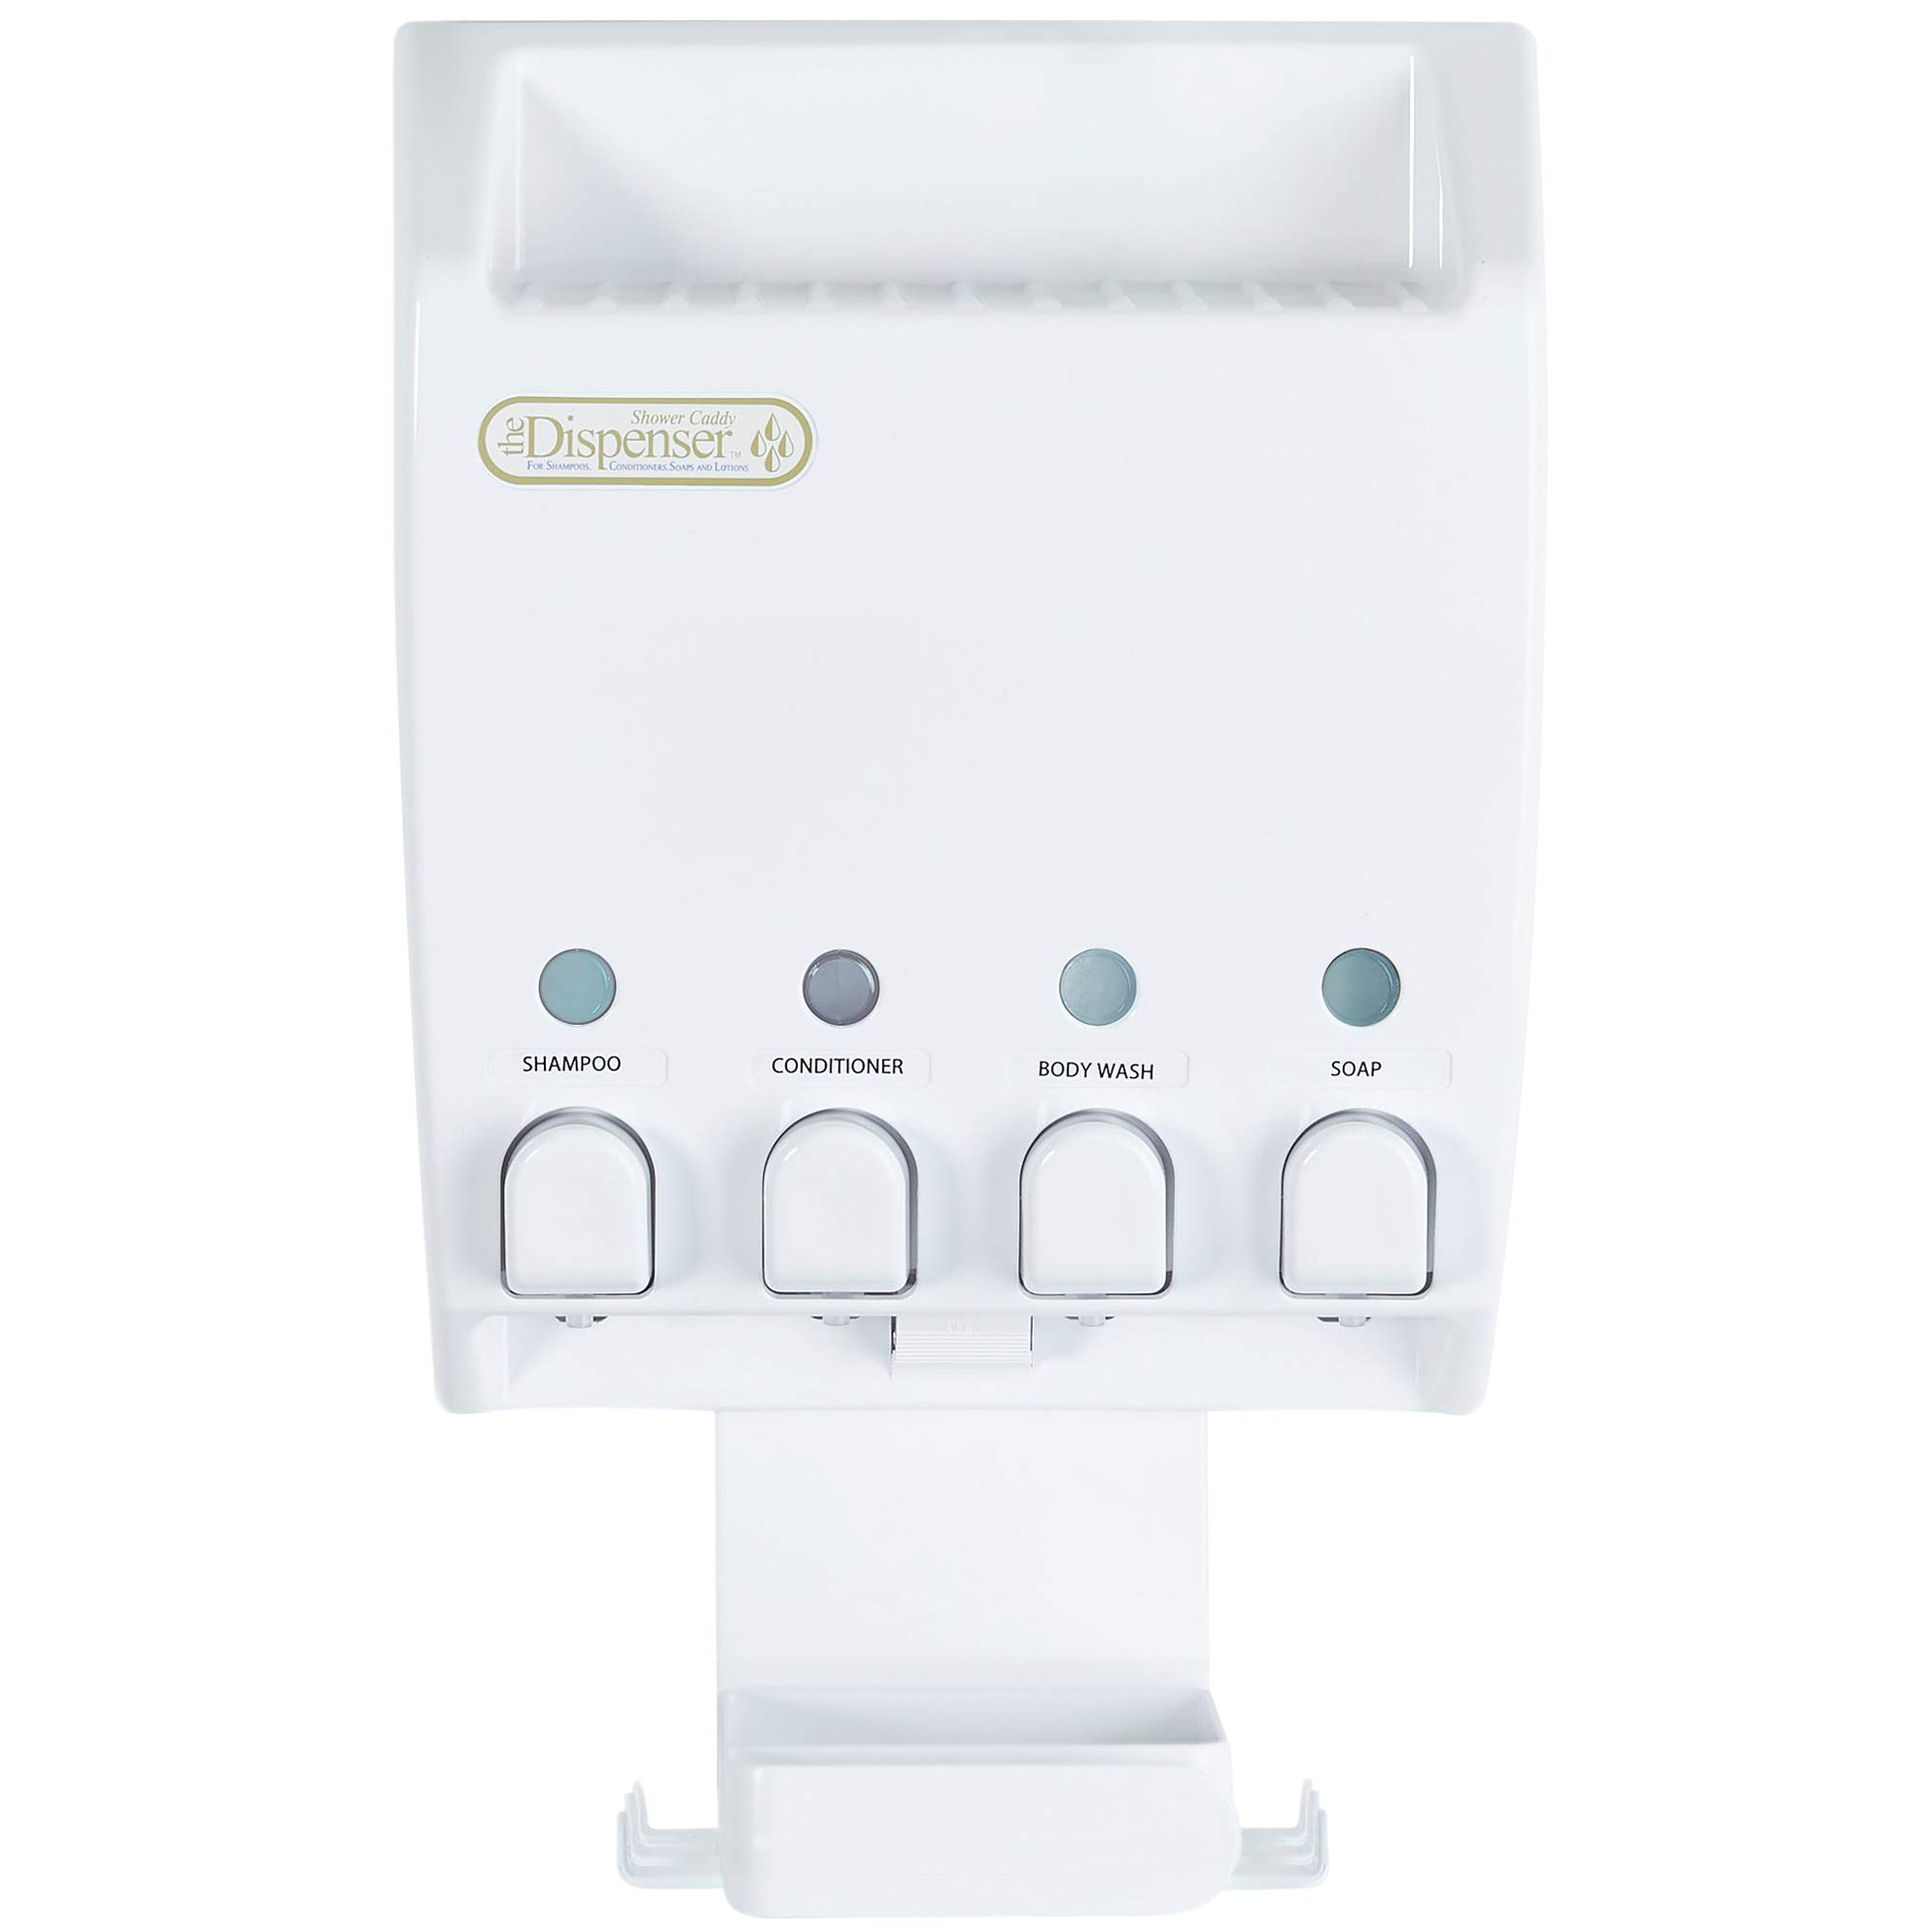 Better Living Products Dispenser Shower Caddy, Four Chamber Dispenser and Caddy, White (75453)